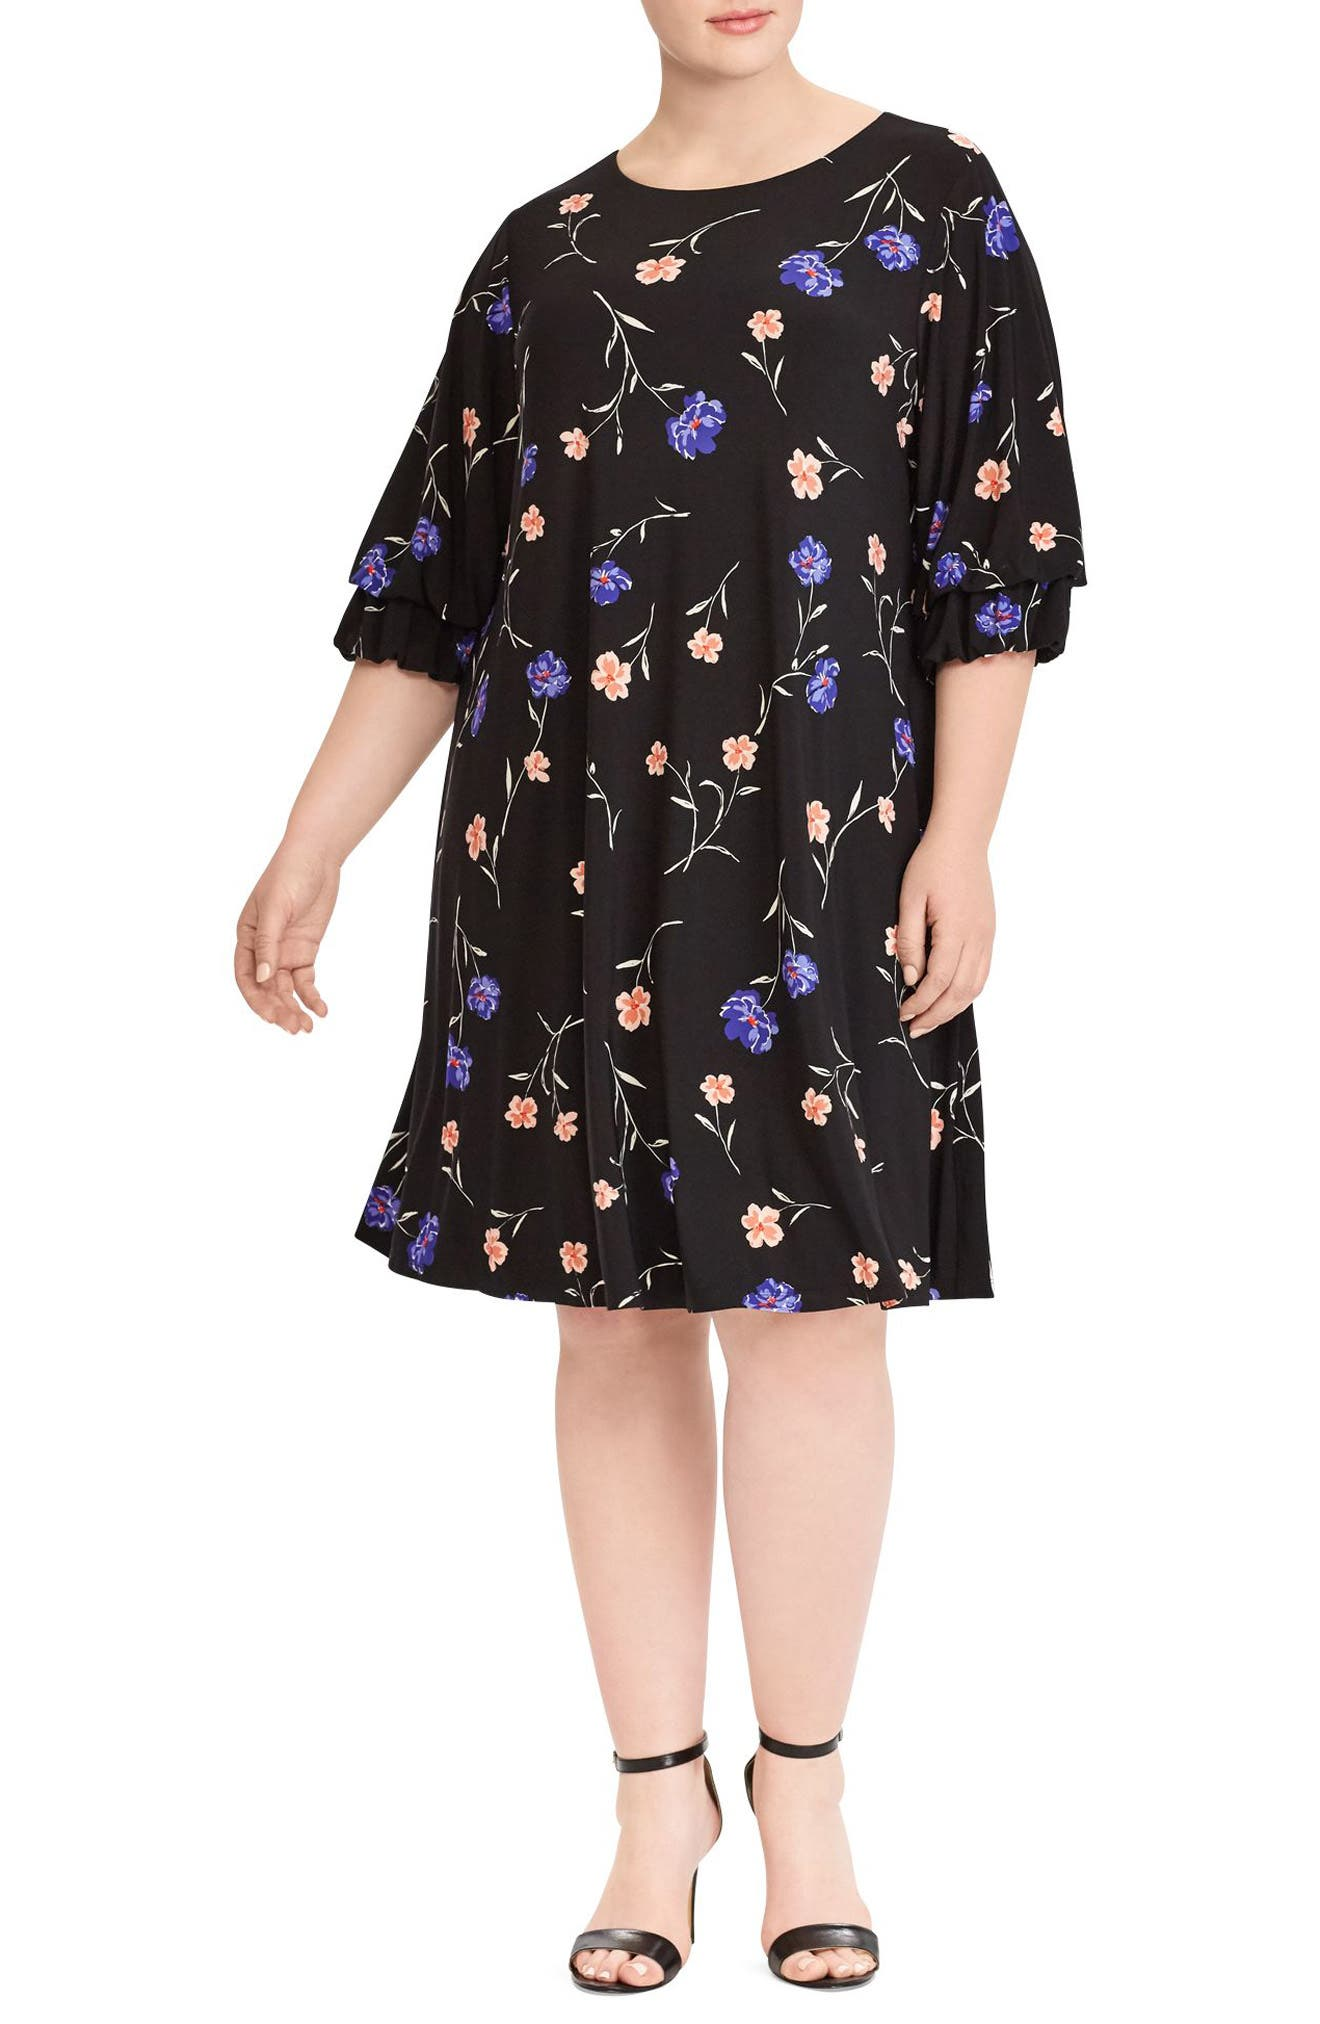 Lauren Ralph Lauren Ruffle Sleeve Floral Print Dress (Plus Size)